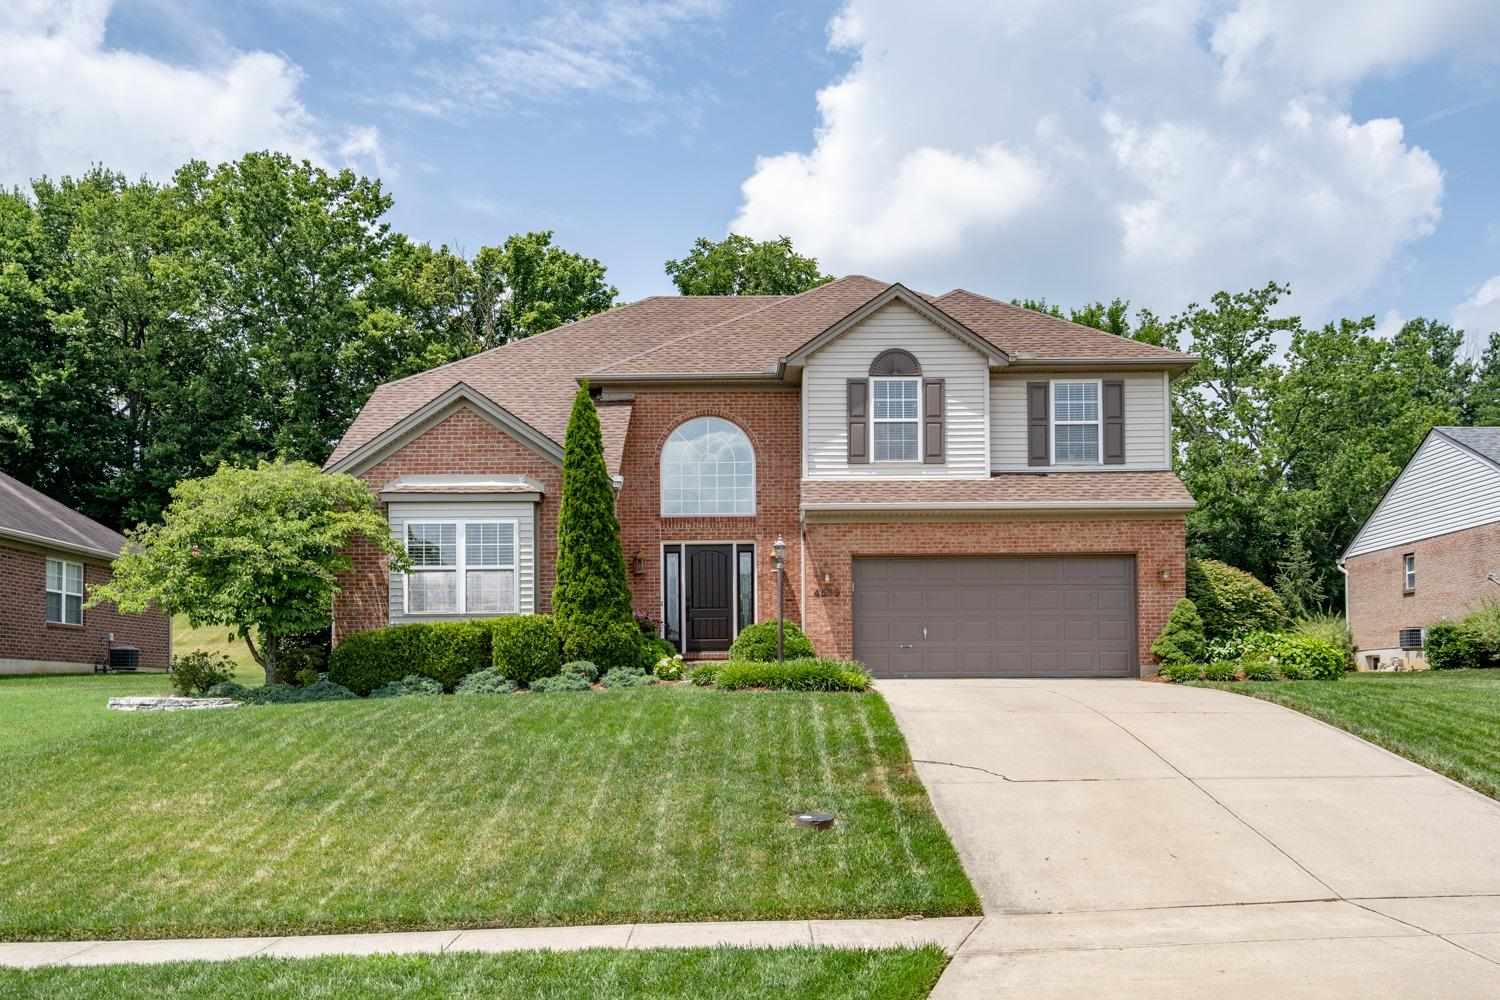 4589 Hampton Pointe Dr Bridgetown, OH